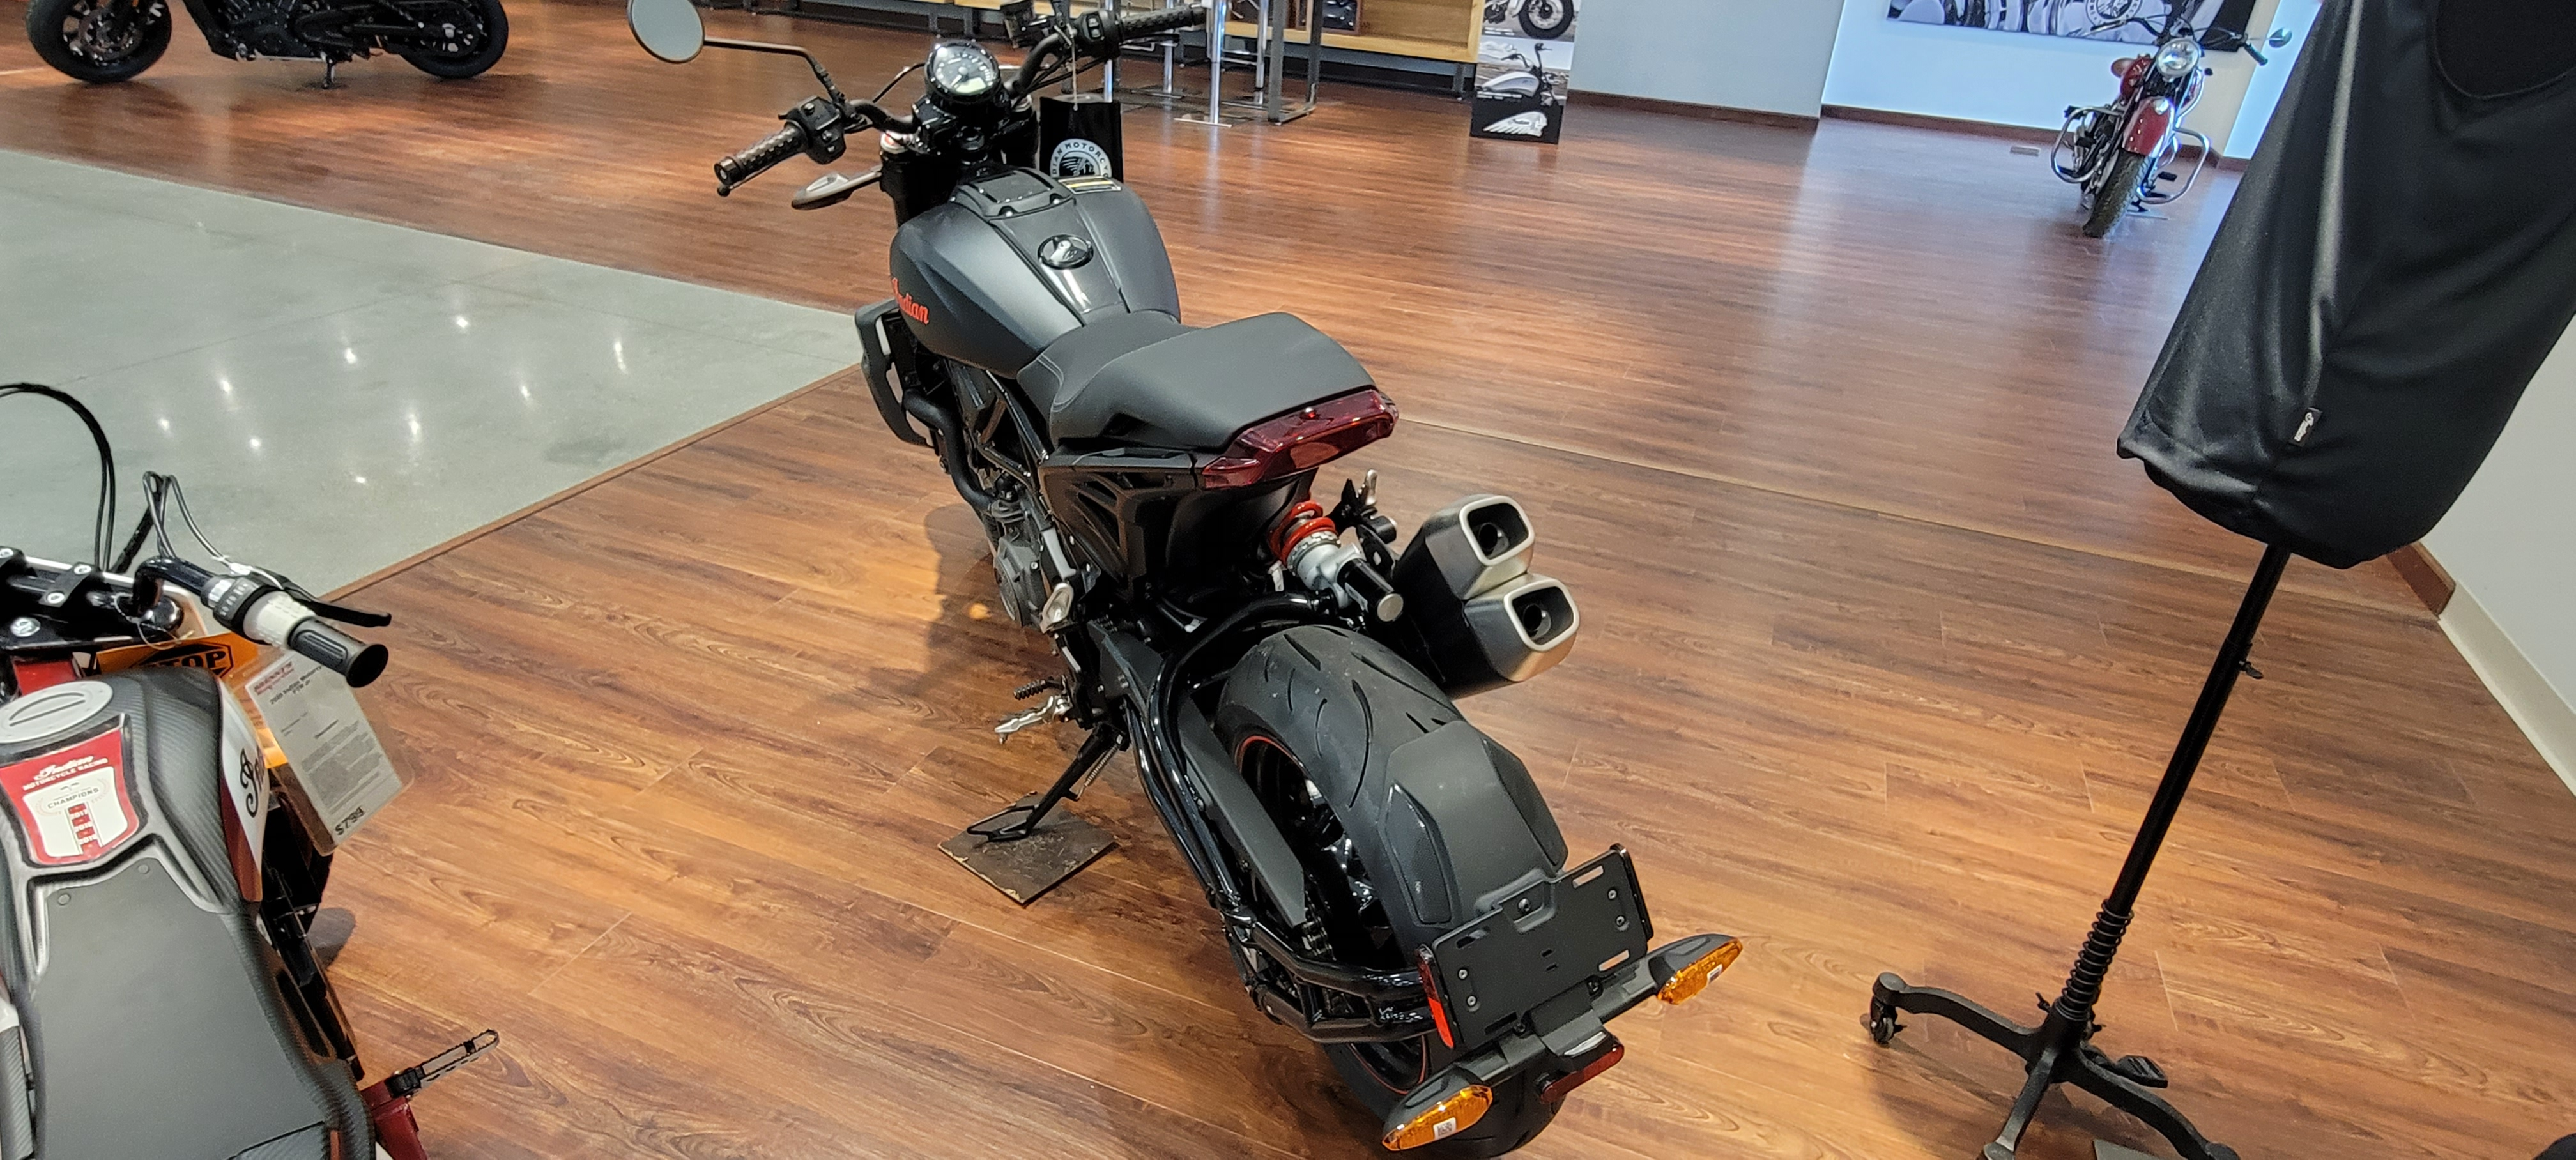 2022 Indian Motorcycle FTR 1200 at Brenny's Motorcycle Clinic, Bettendorf, IA 52722